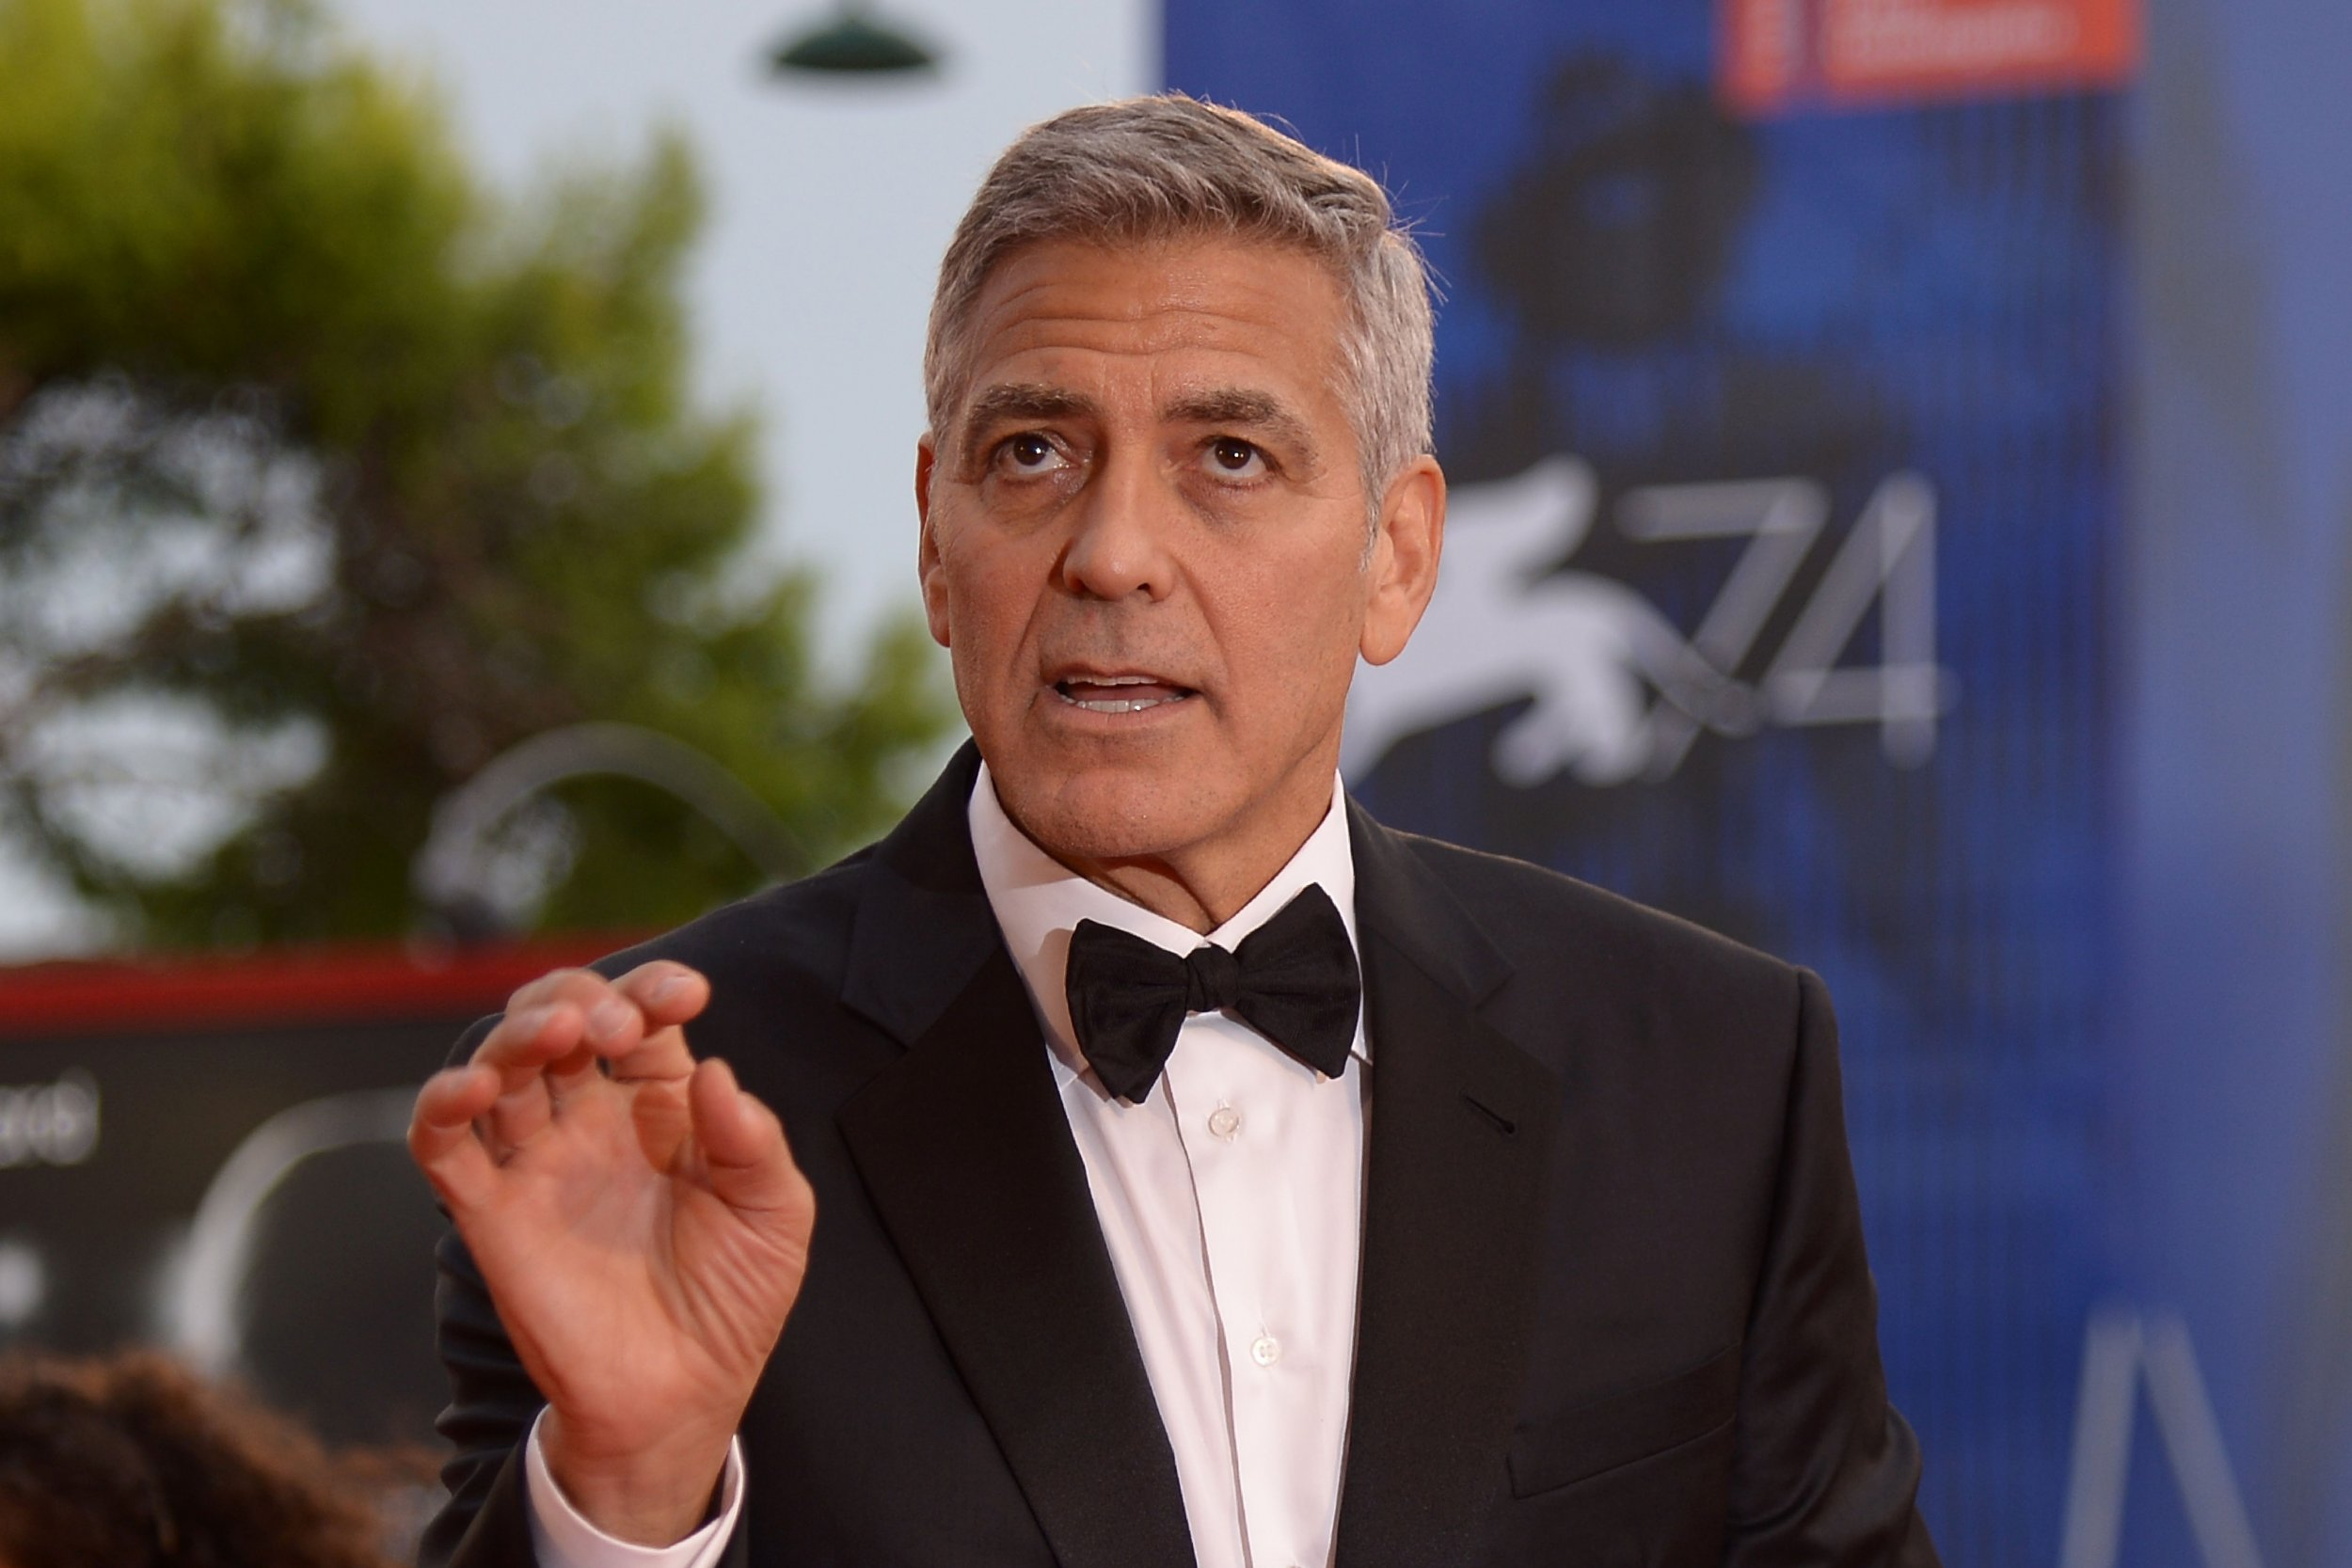 george clooney bannon insults 09-09-17